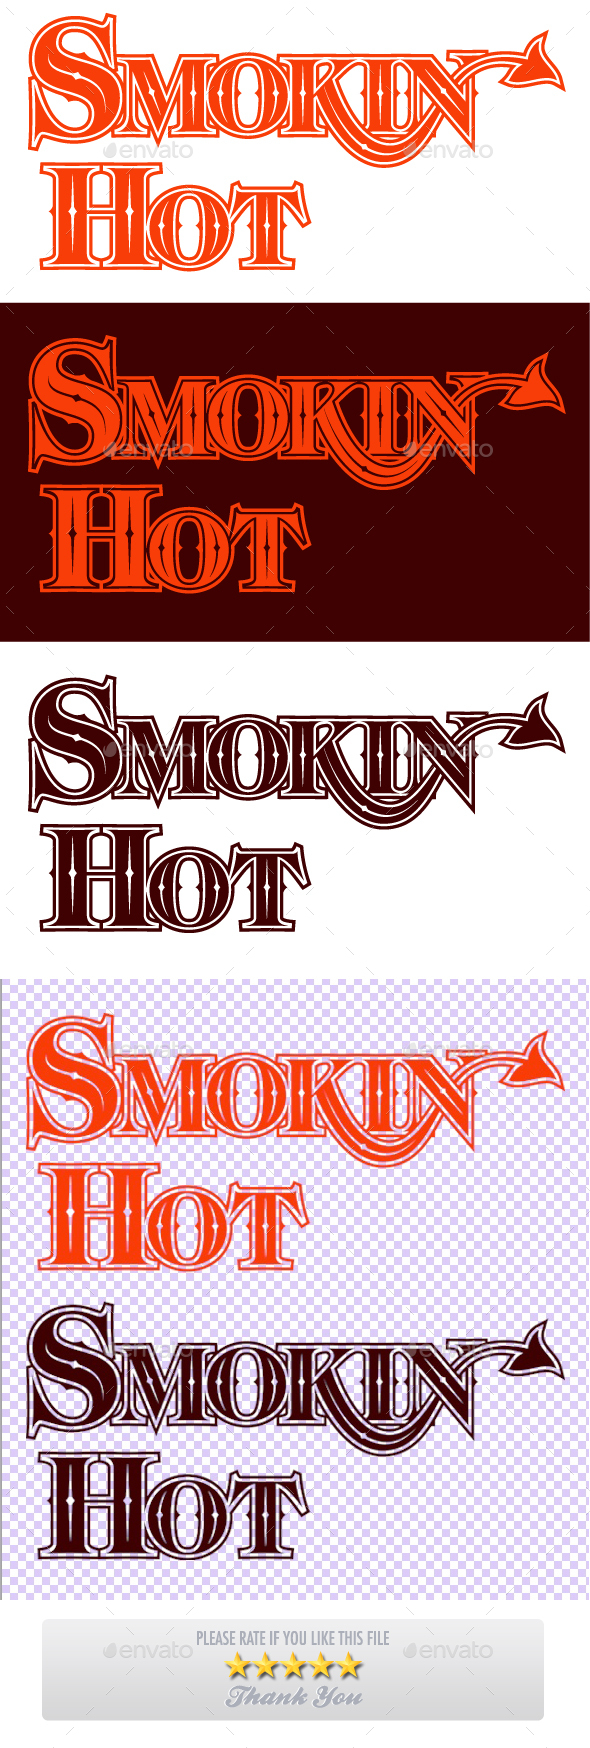 Smokin Hot Hand Drawn Lettering Design - Miscellaneous Vectors